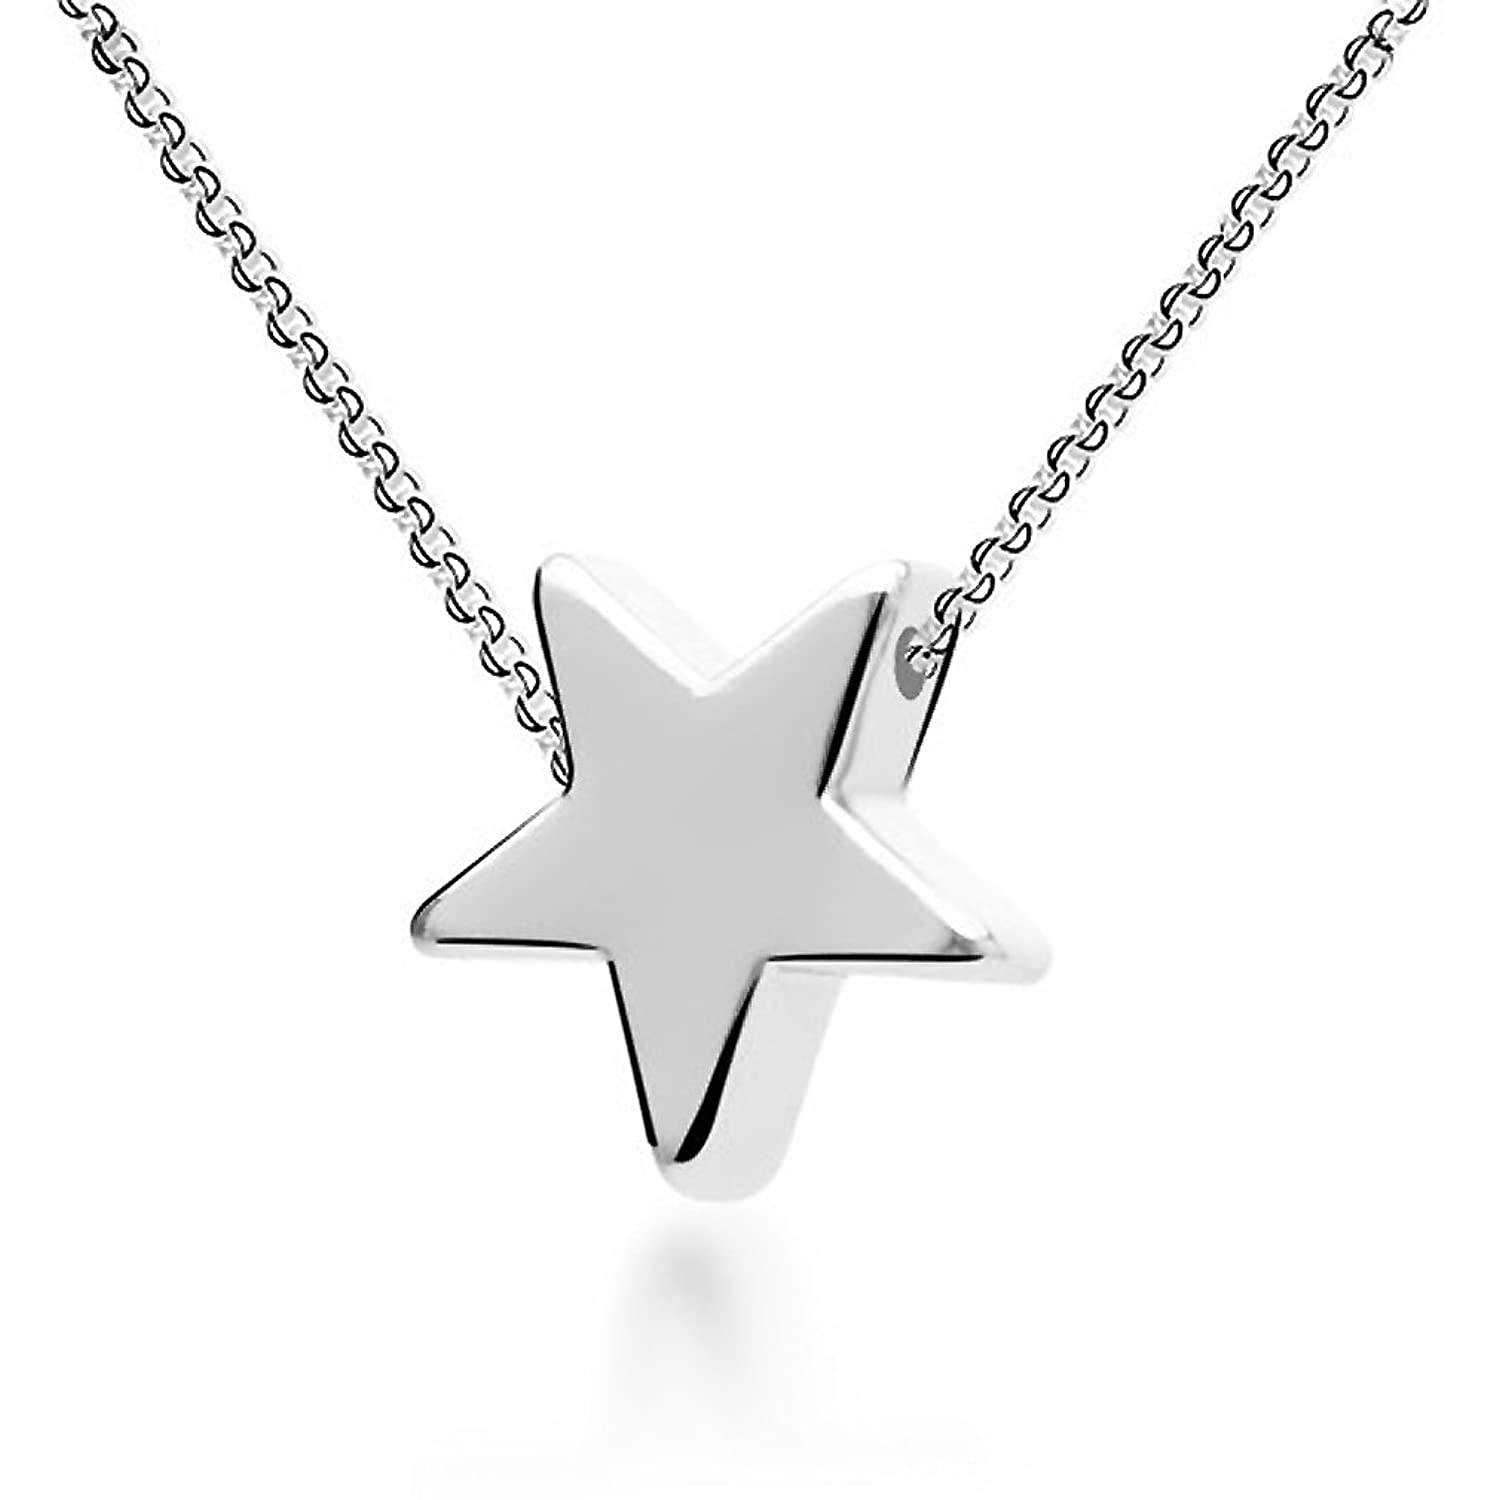 shaped setting shape is gold kite invisible diamond pendant h an color pendants ct what a cut star purchasing htm white